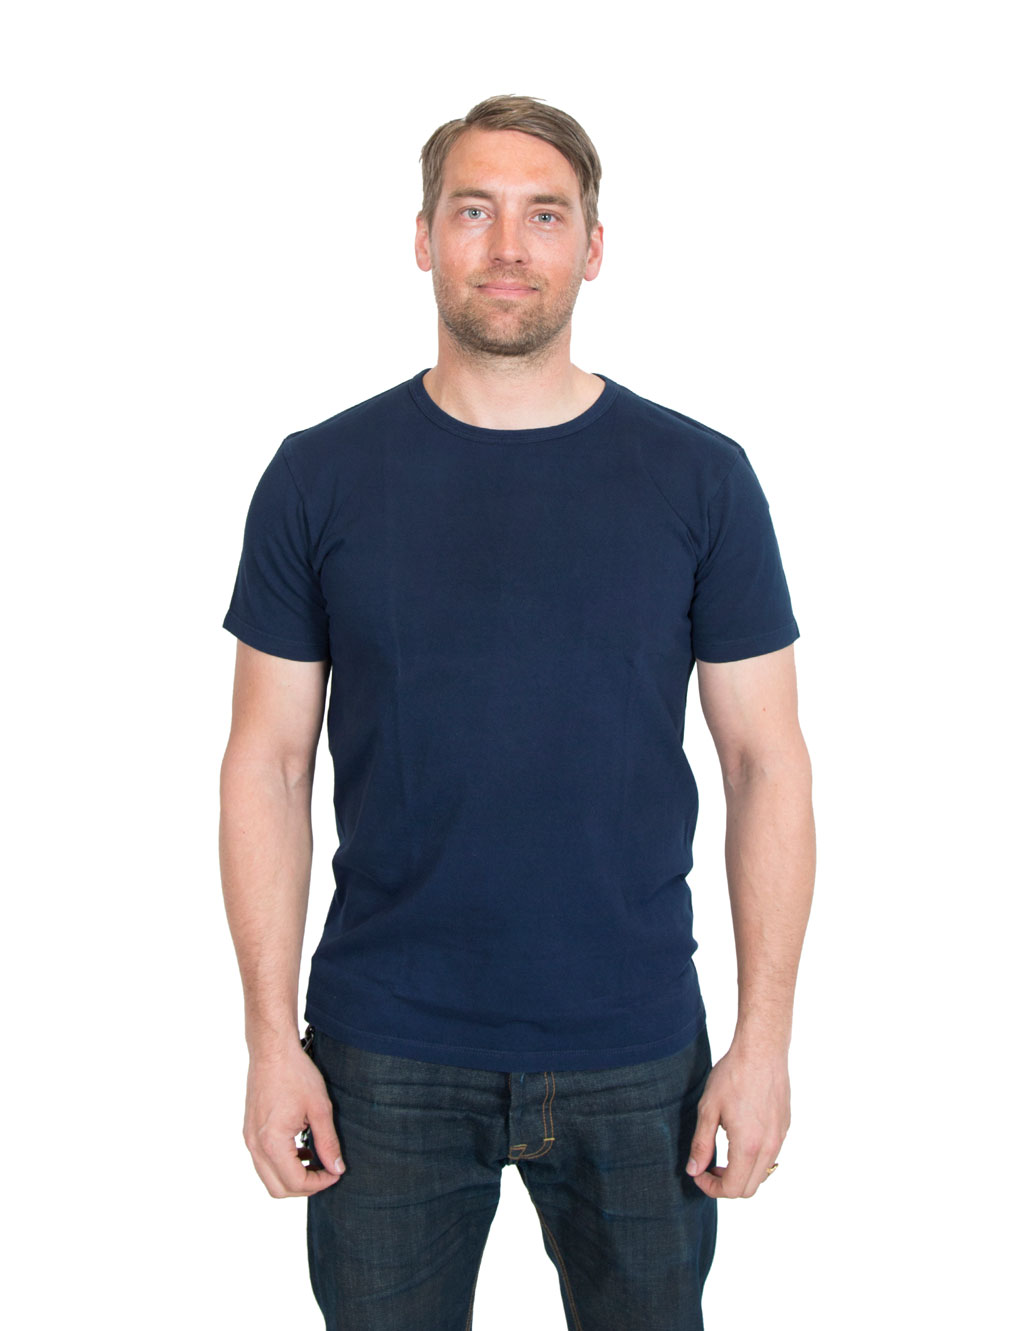 White t shirt company - Lady White Co Our Navy T Shirt Navy